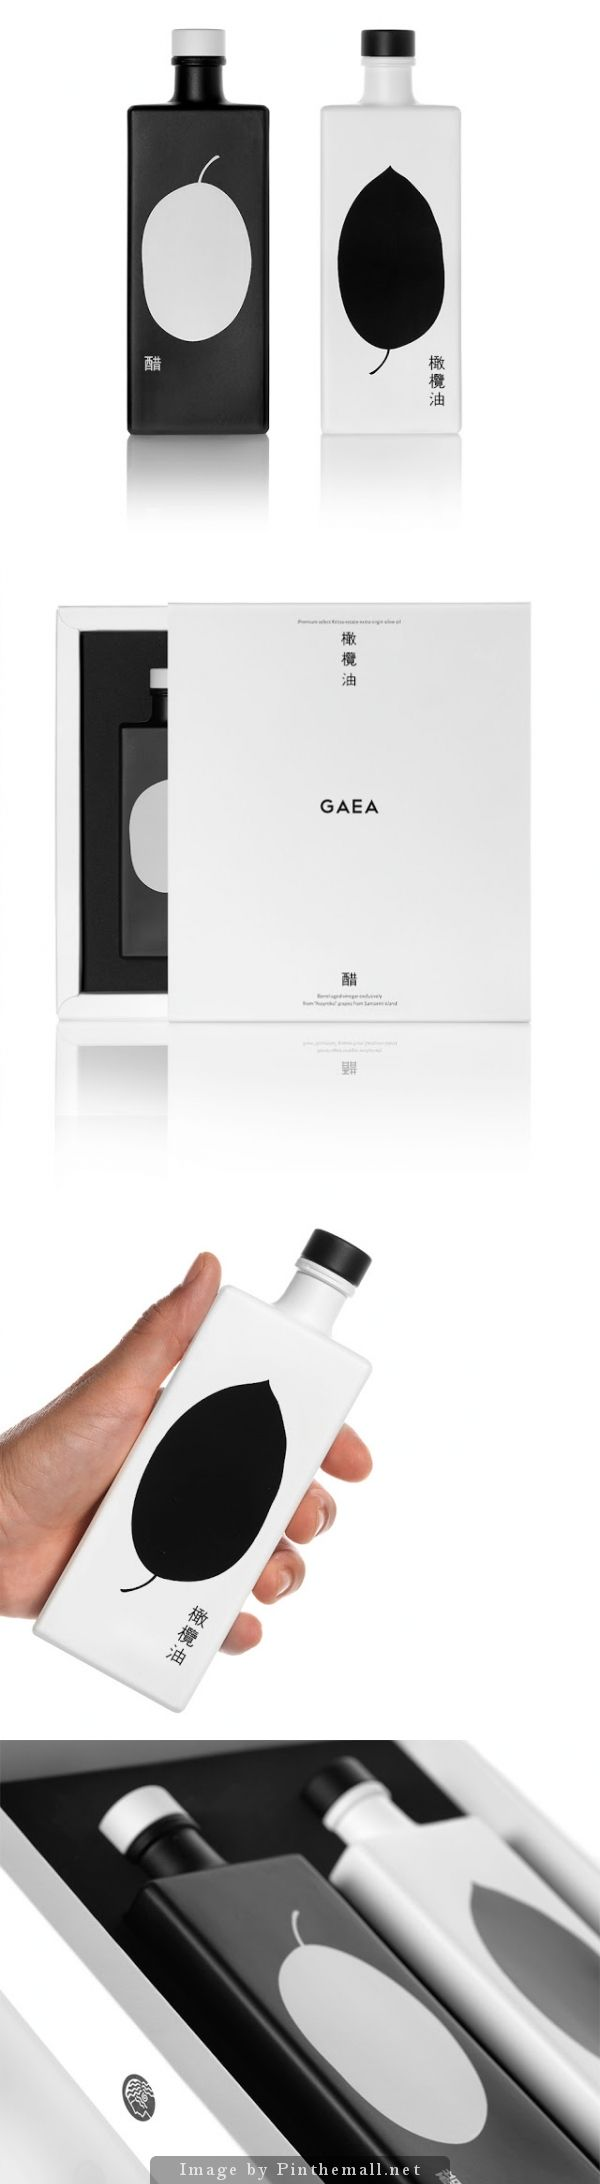 GAEA #Oil and #Vinegar, Creative Agency: mousegraphics